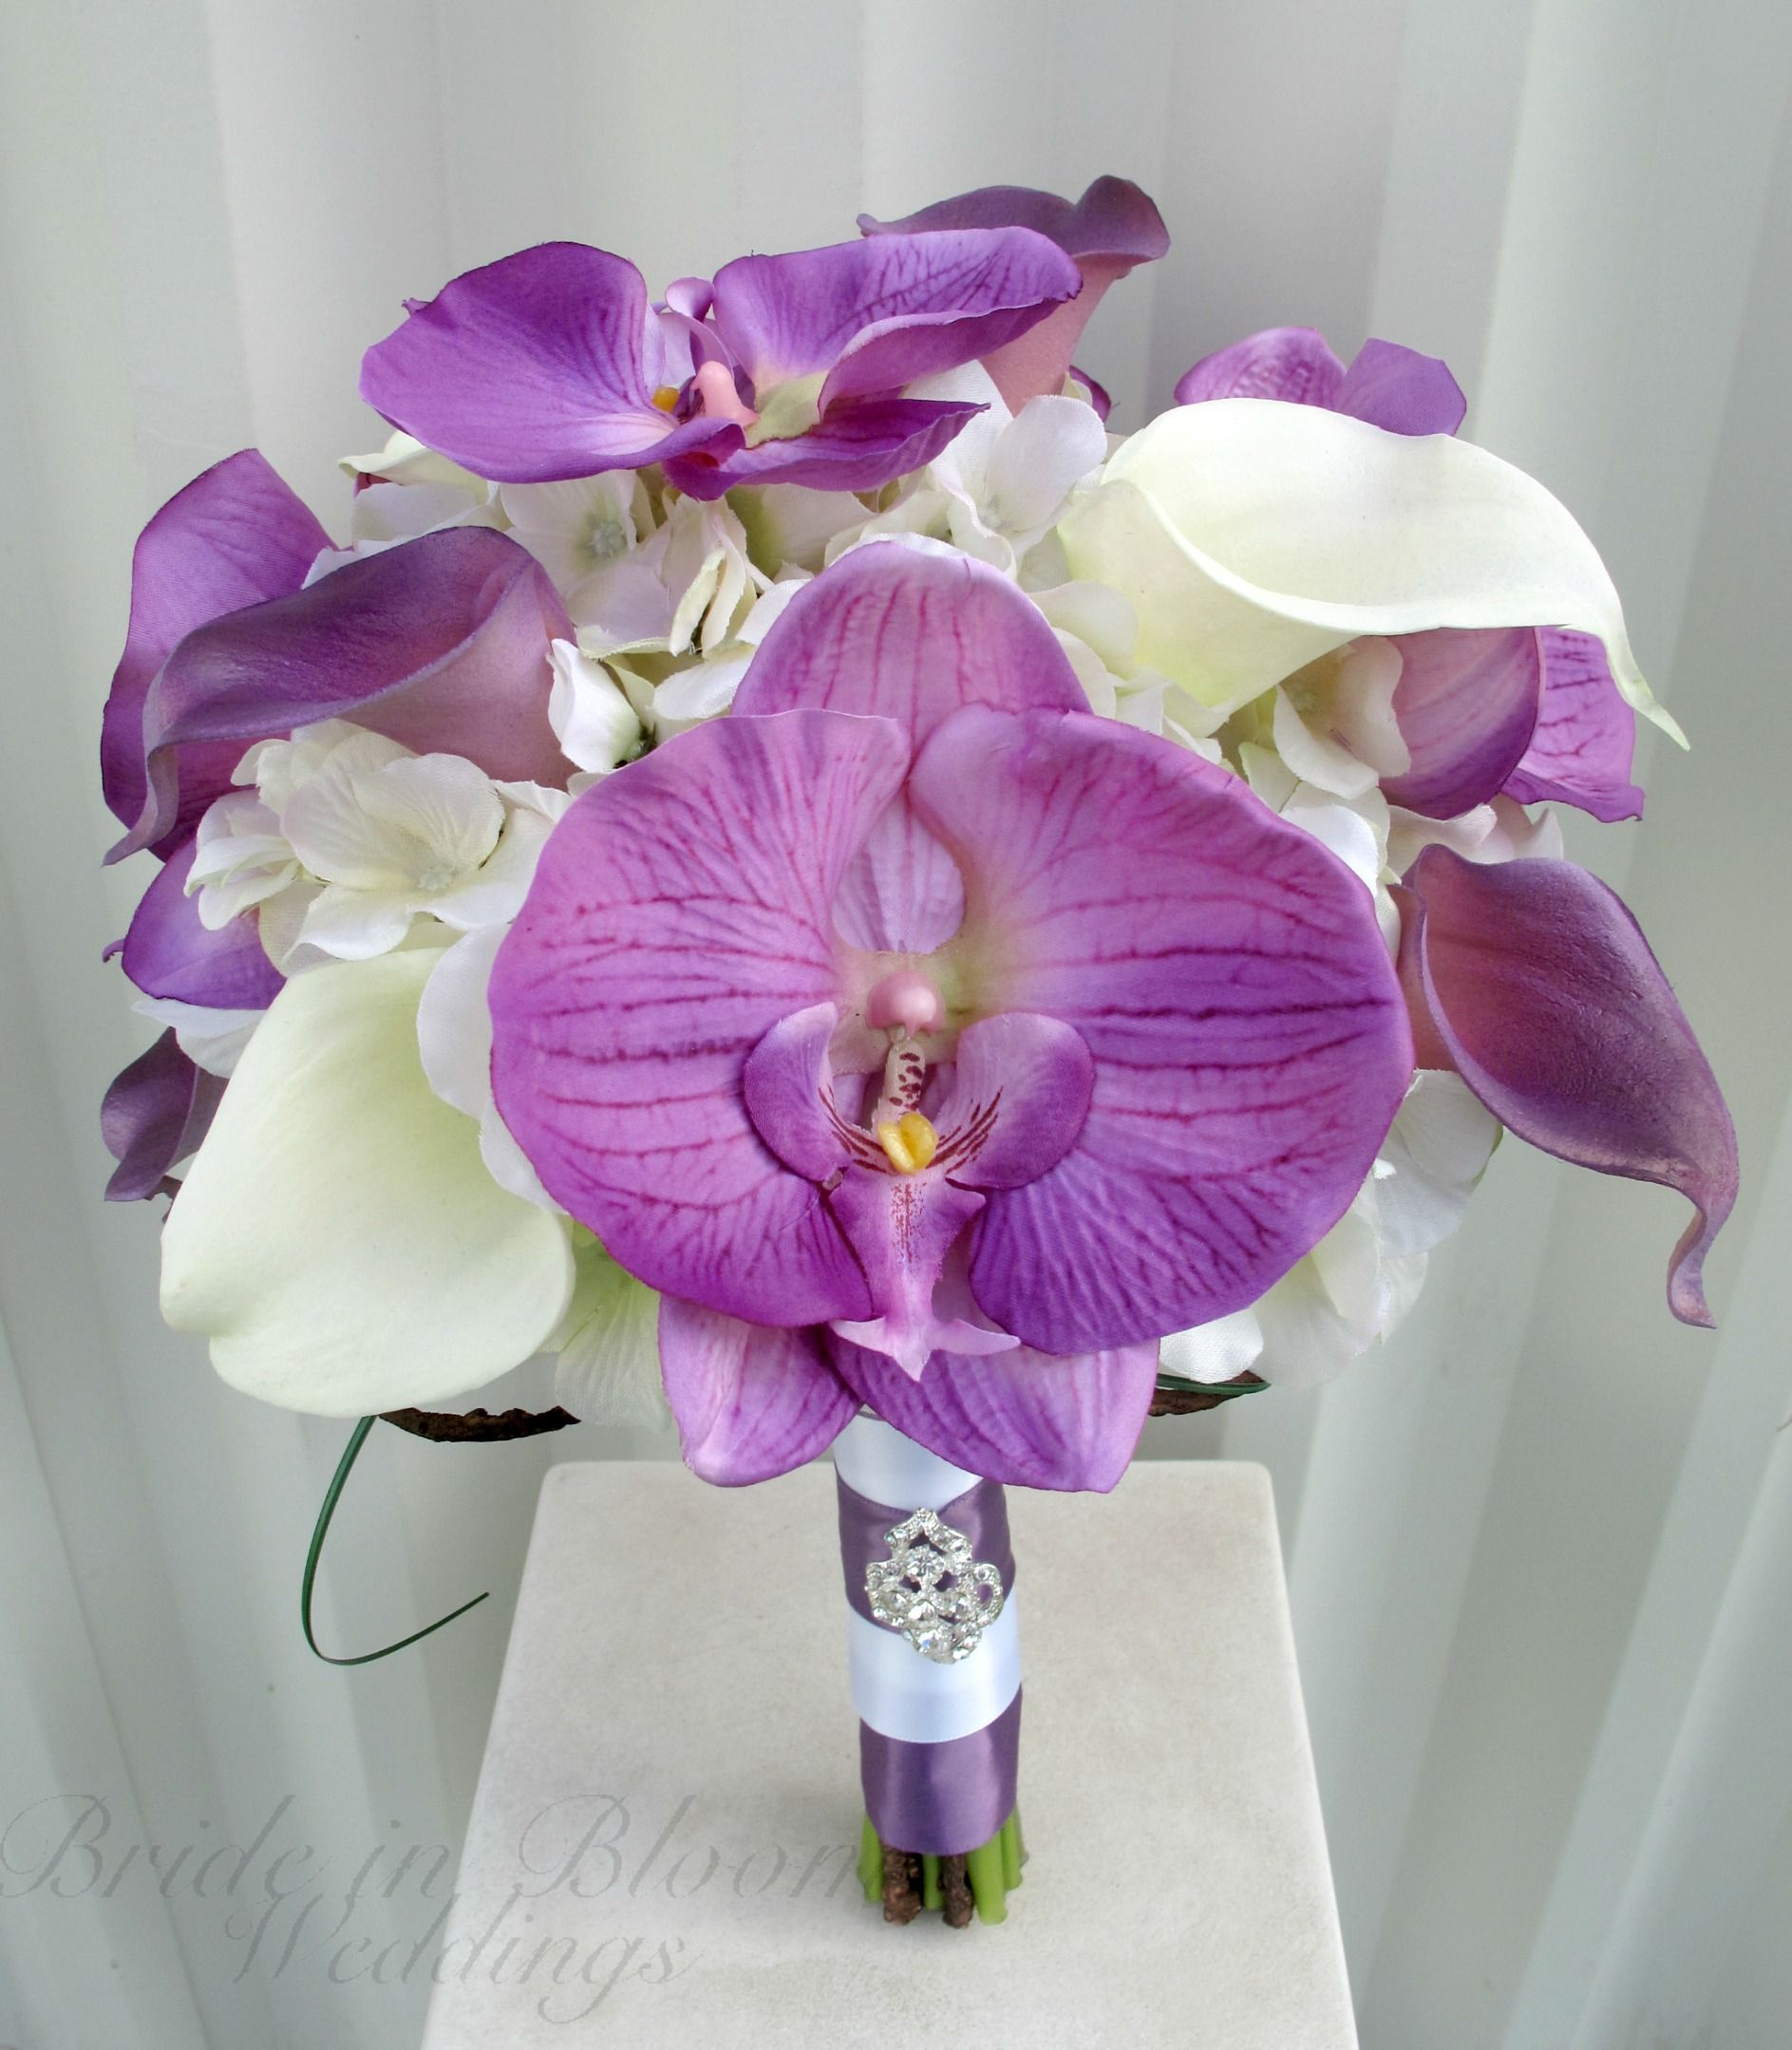 Wedding bouquet lilies and orchids lavender white calla lily orchid wedding bouquet lilies and orchids lavender white calla lily orchid wedding bouquet bride in bloom pmeyiiqh izmirmasajfo